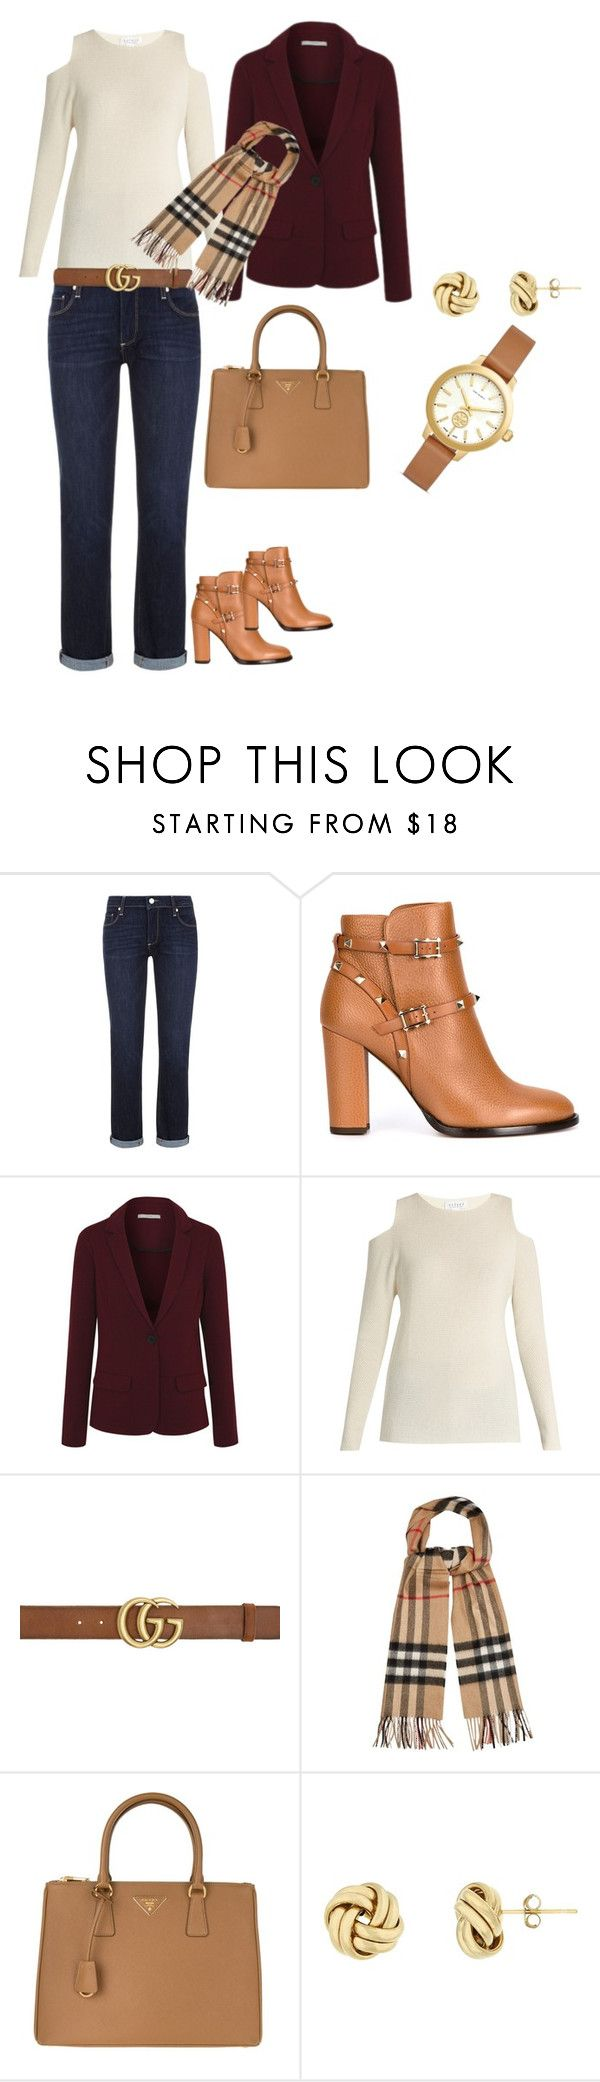 """""""Fall outfit"""" by y-joubert on Polyvore featuring Paige Denim, Valentino, George, Velvet by Graham & Spencer, Gucci, Burberry, Prada and Tory Burch"""